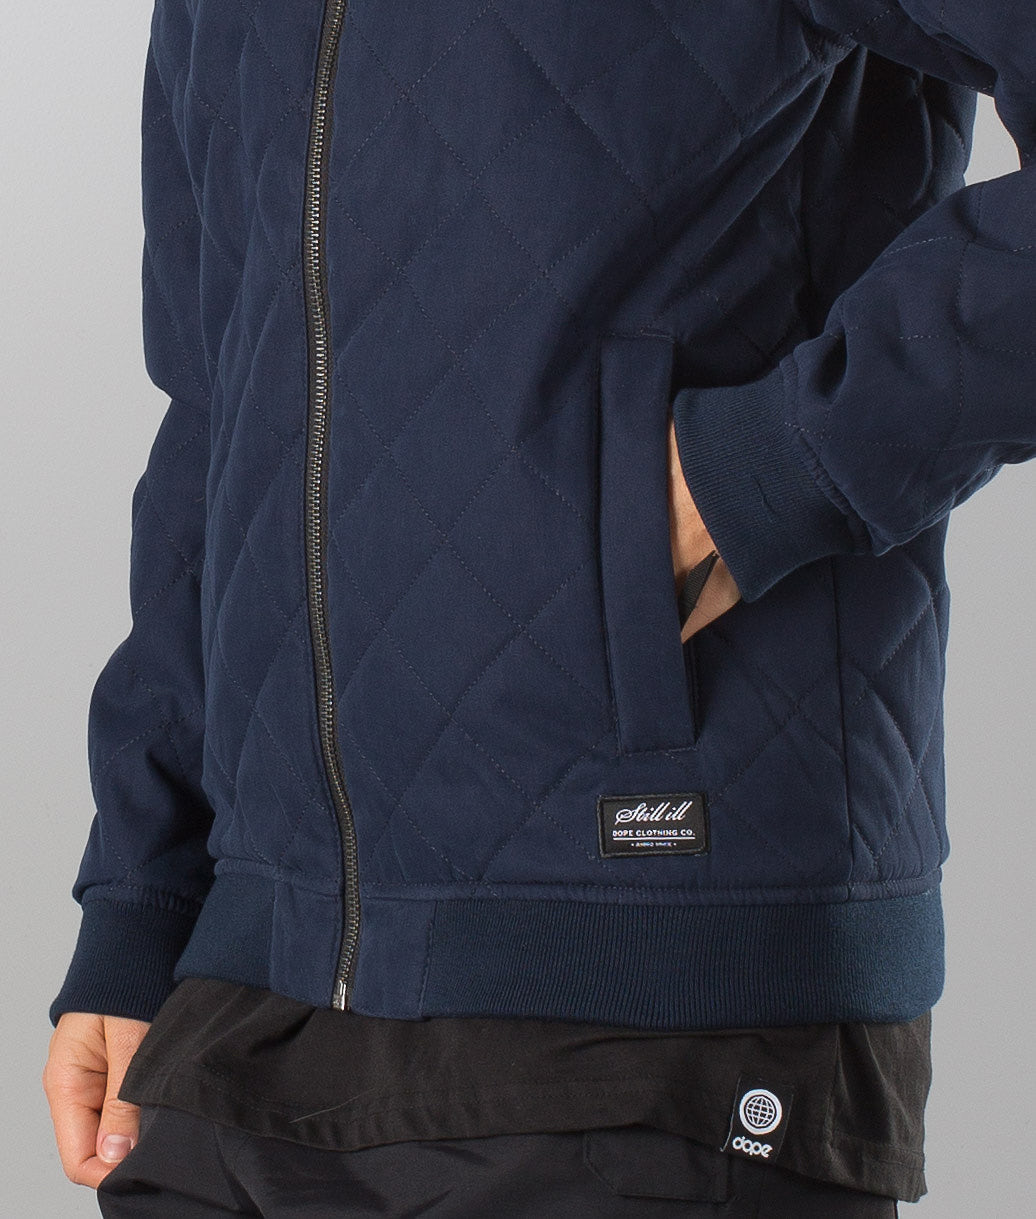 Buy Bomber Unisex Jacket from Dope at Ridestore.com - Always free shipping, free returns and 30 days money back guarantee